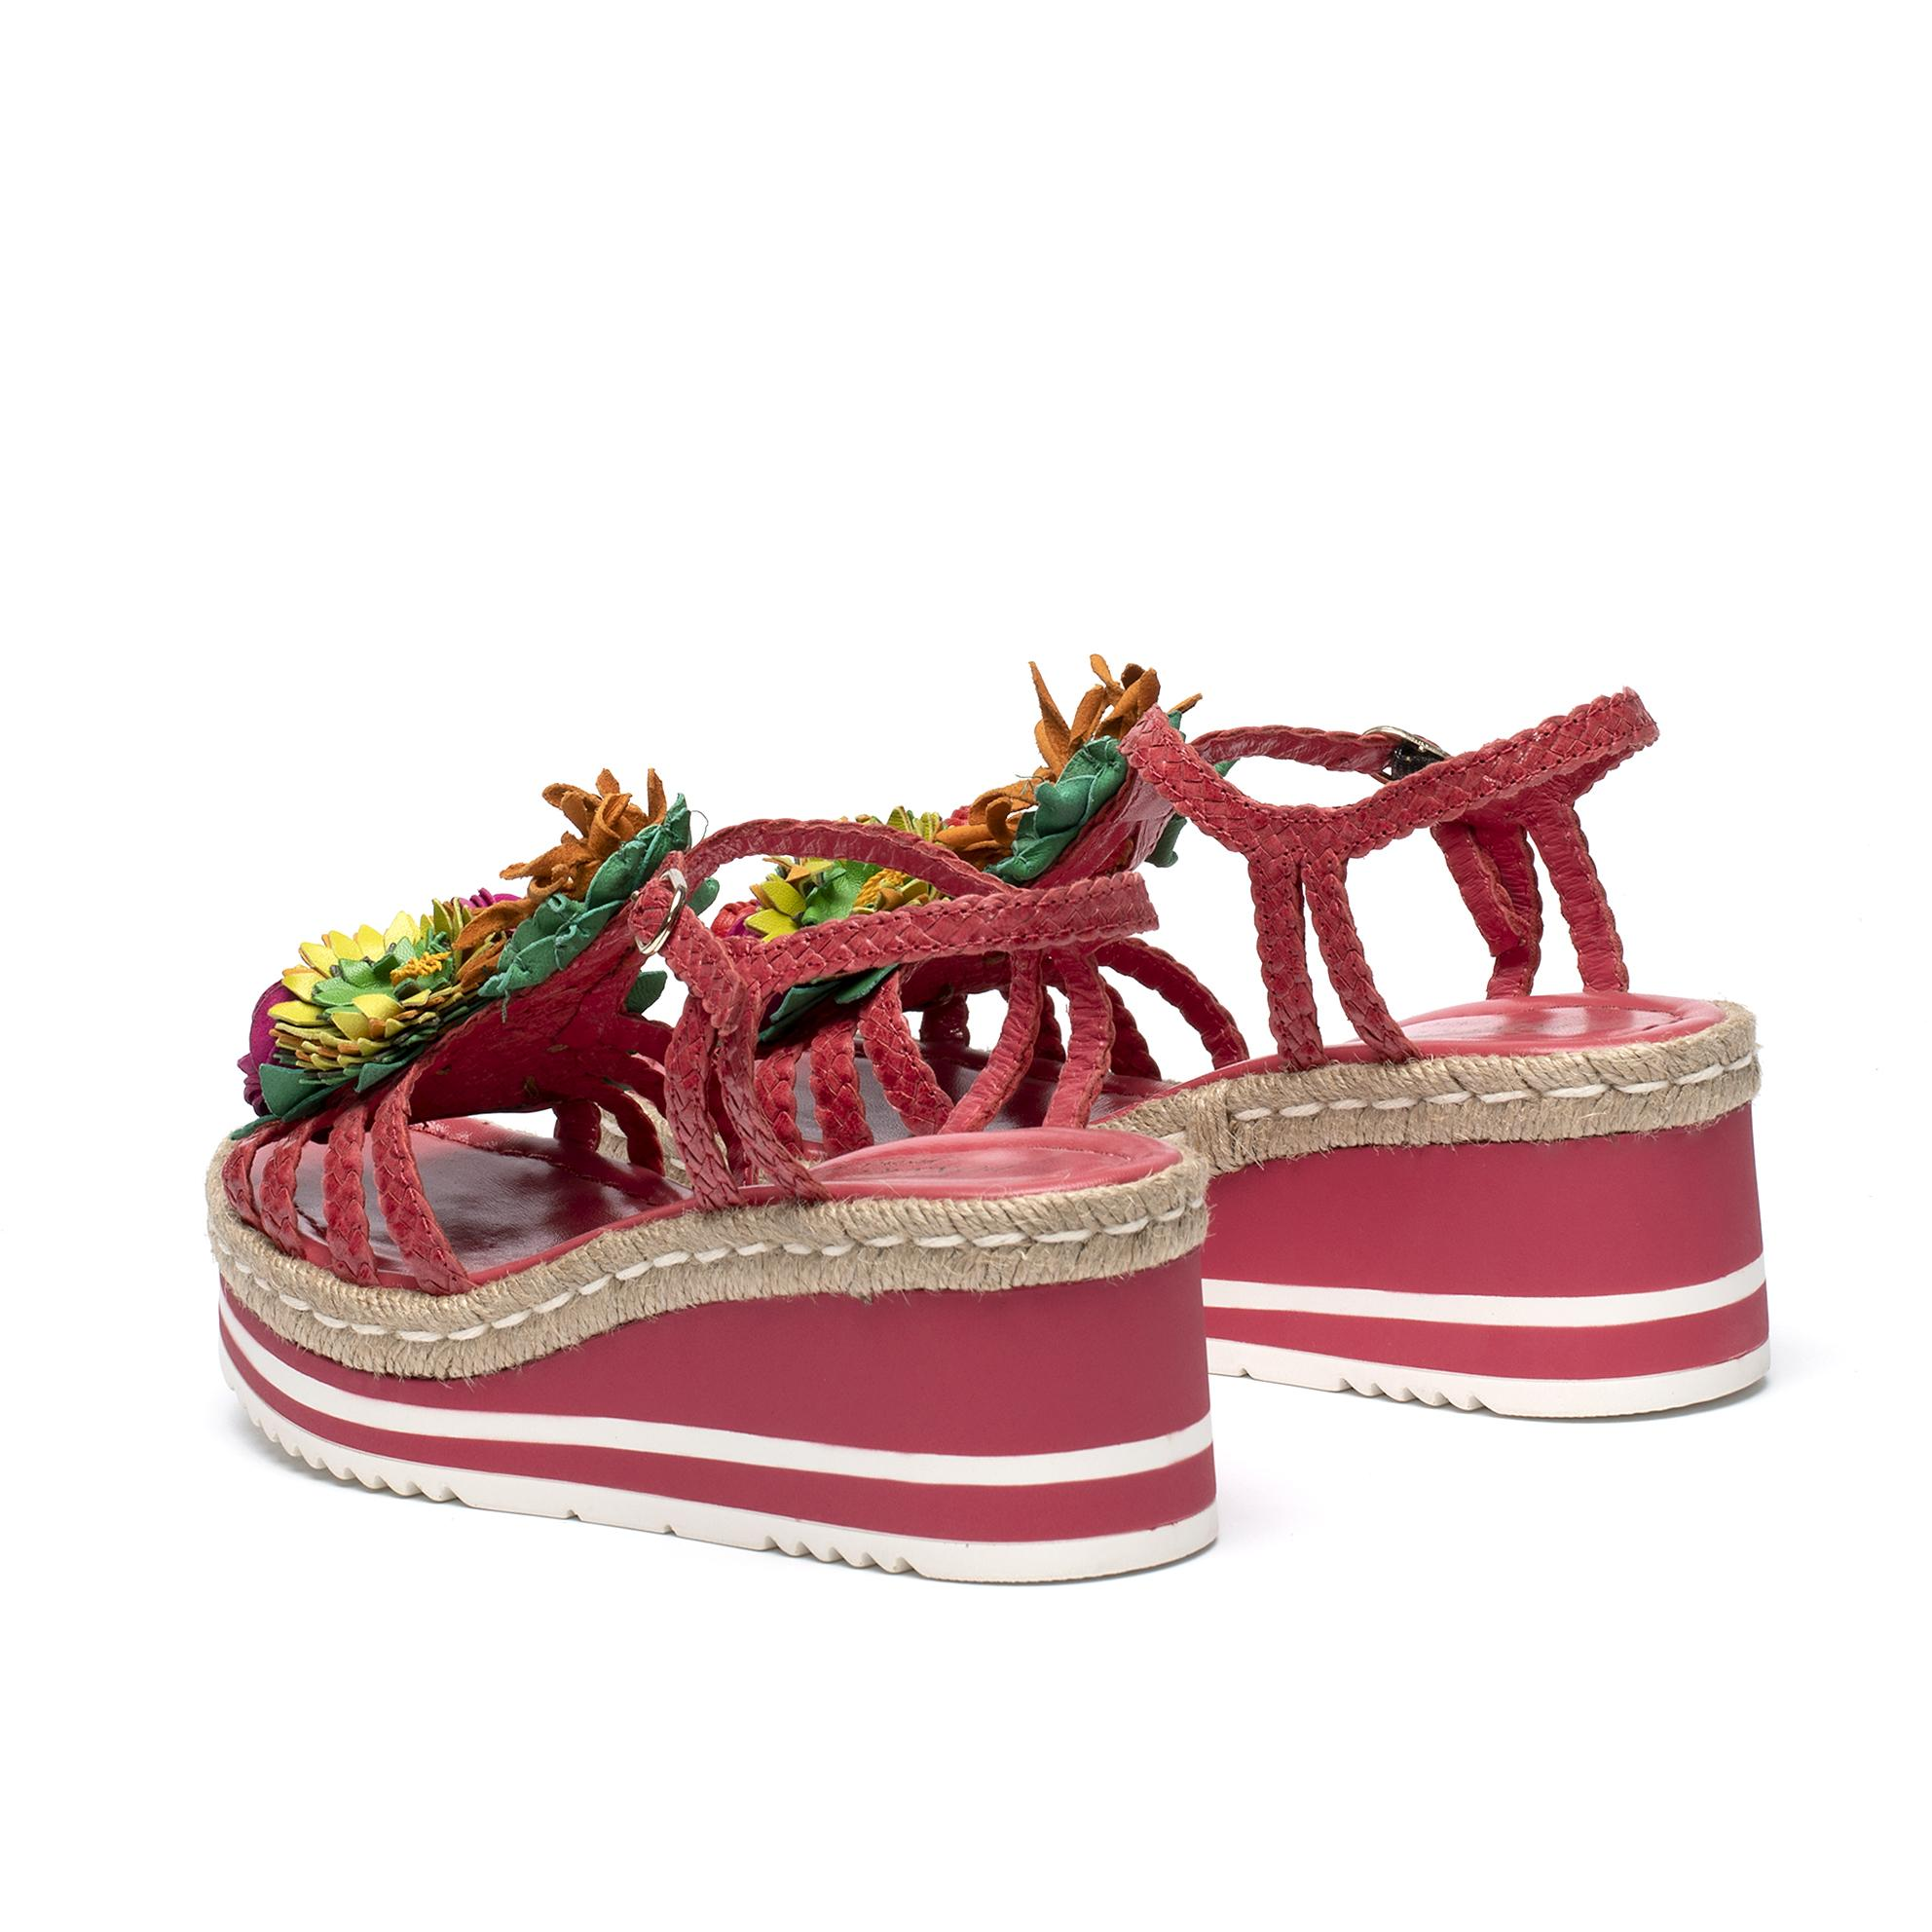 PADOVA STRAWBERRY PLATFORM SANDAL